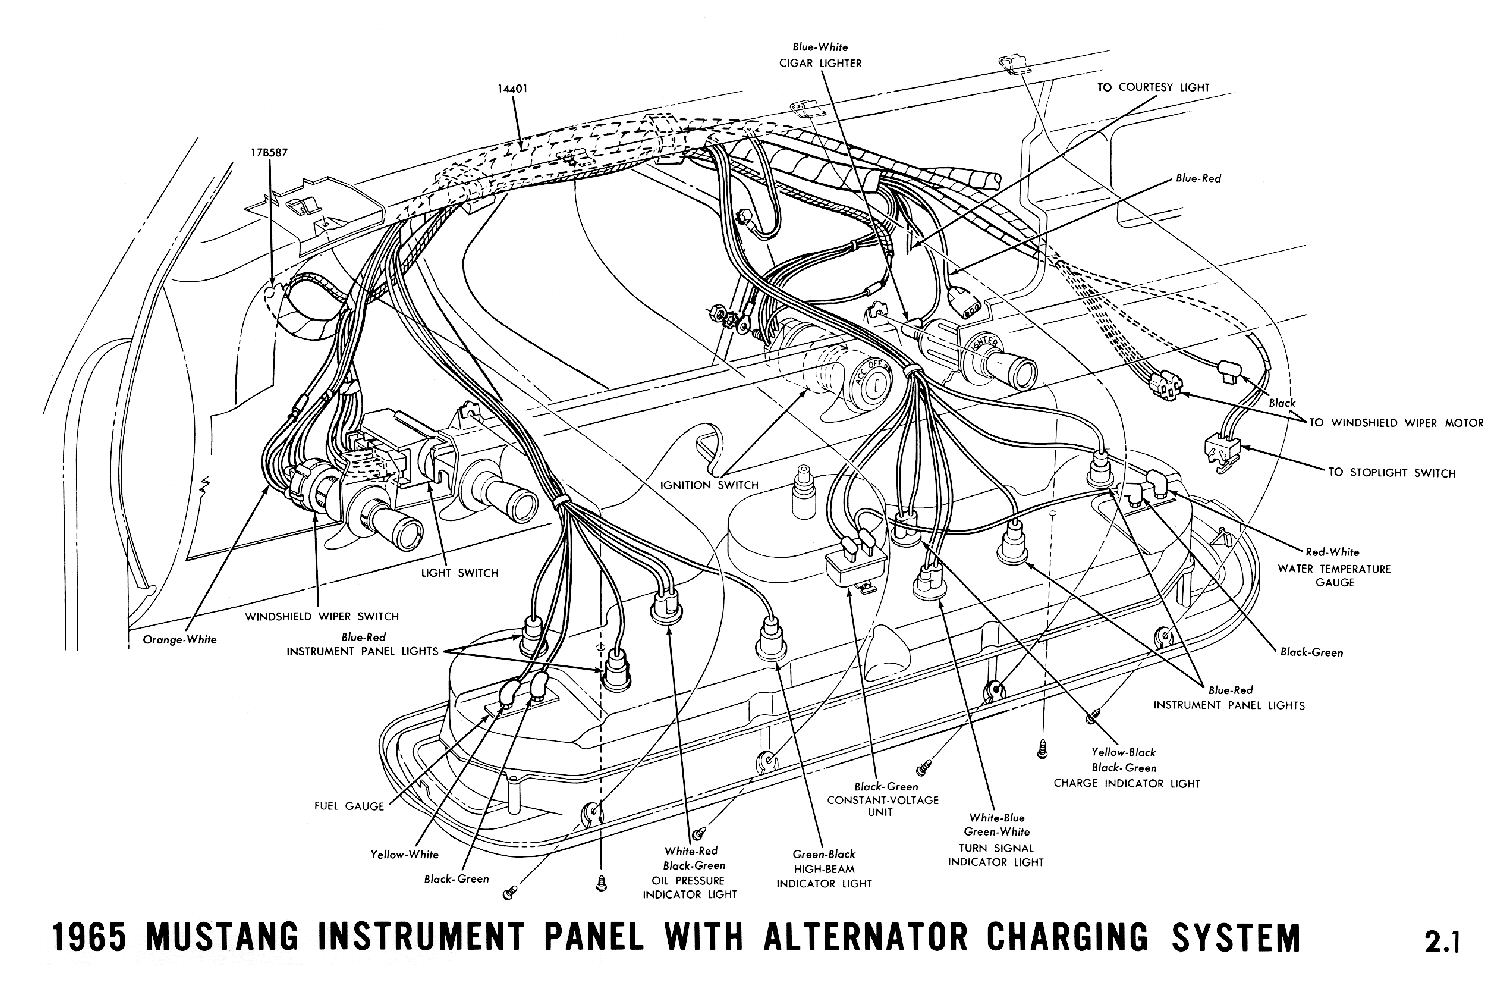 1965a 1965 mustang wiring diagrams average joe restoration 66 mustang alternator wiring diagram at couponss.co